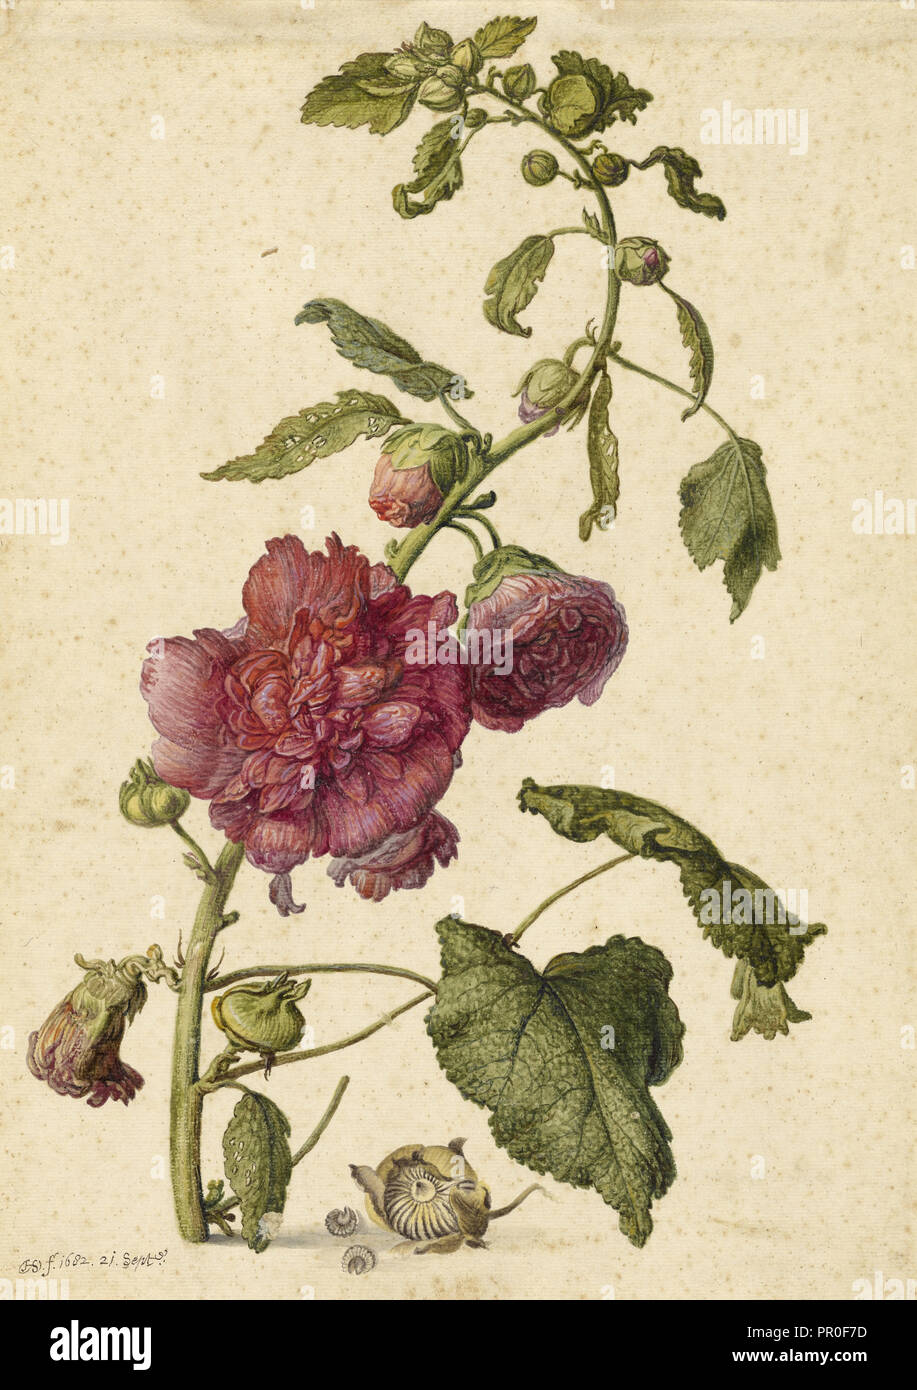 A Hollyhock; Herman Saftleven the Younger, Dutch, 1609 - 1685, Holland, Europe; September 21, 1682; Watercolor, gouache - Stock Image